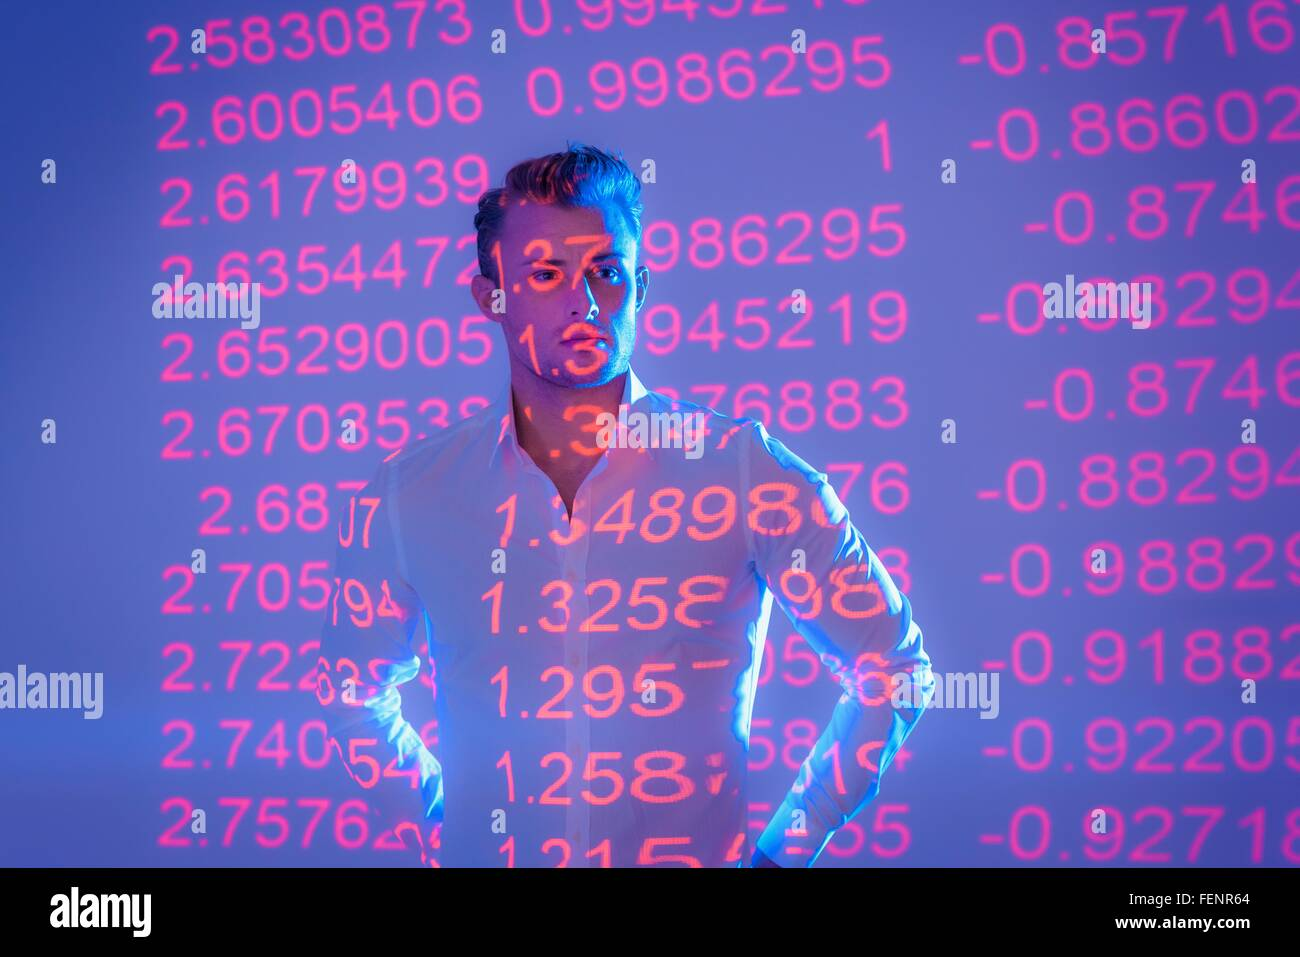 Businessman with projected financial data - Stock Image